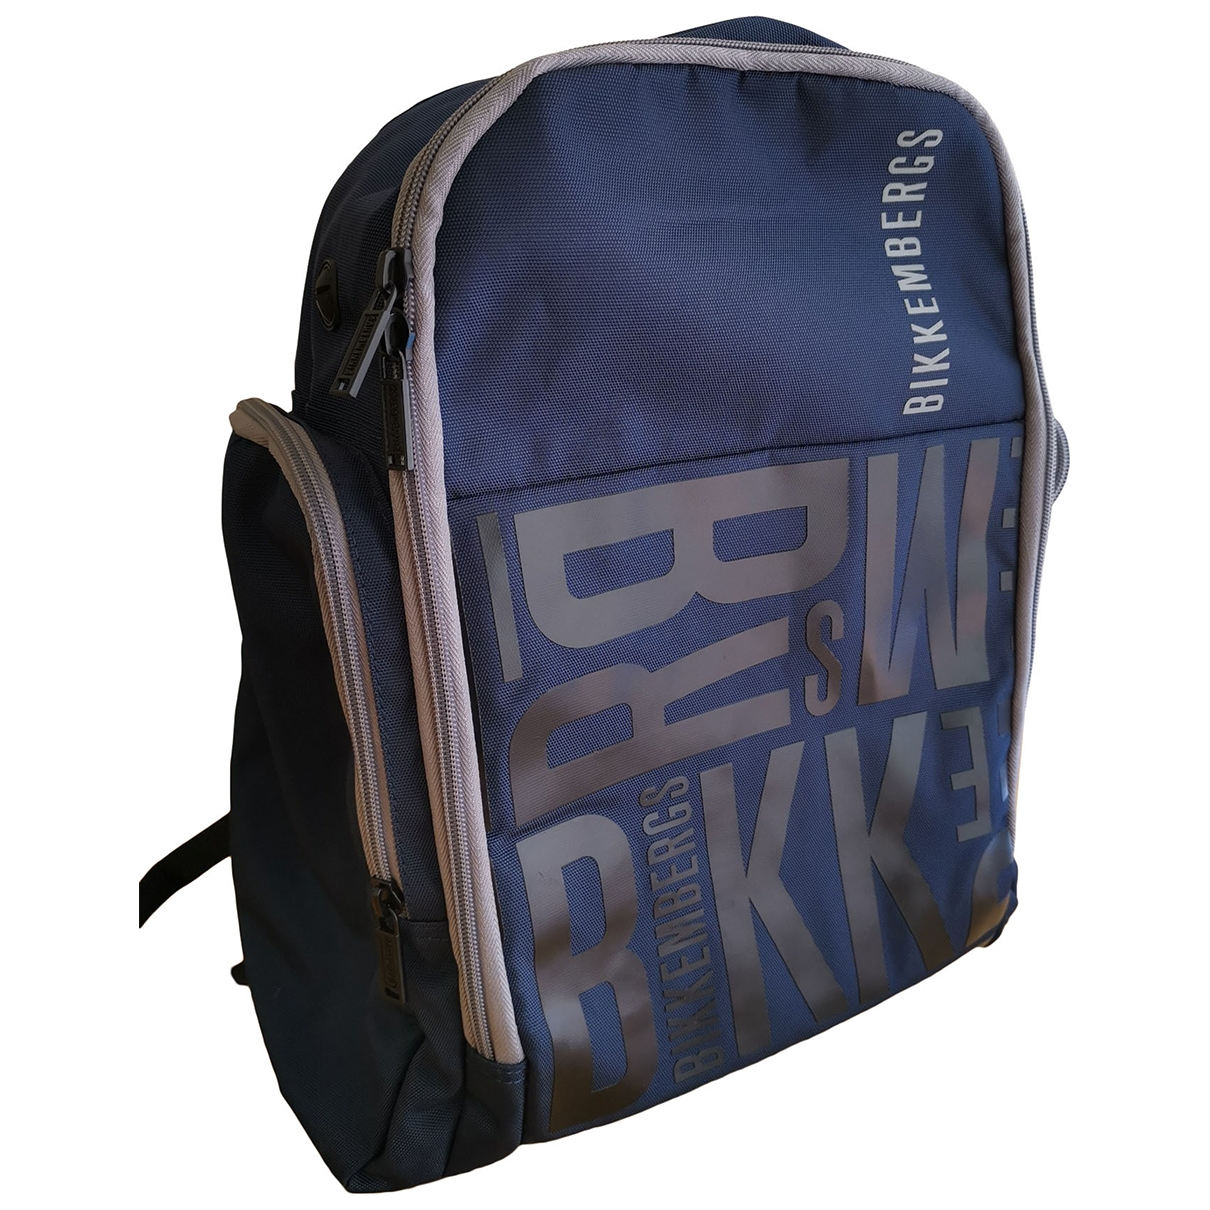 Dirk Bikkembergs \N Blue bag for Men \N